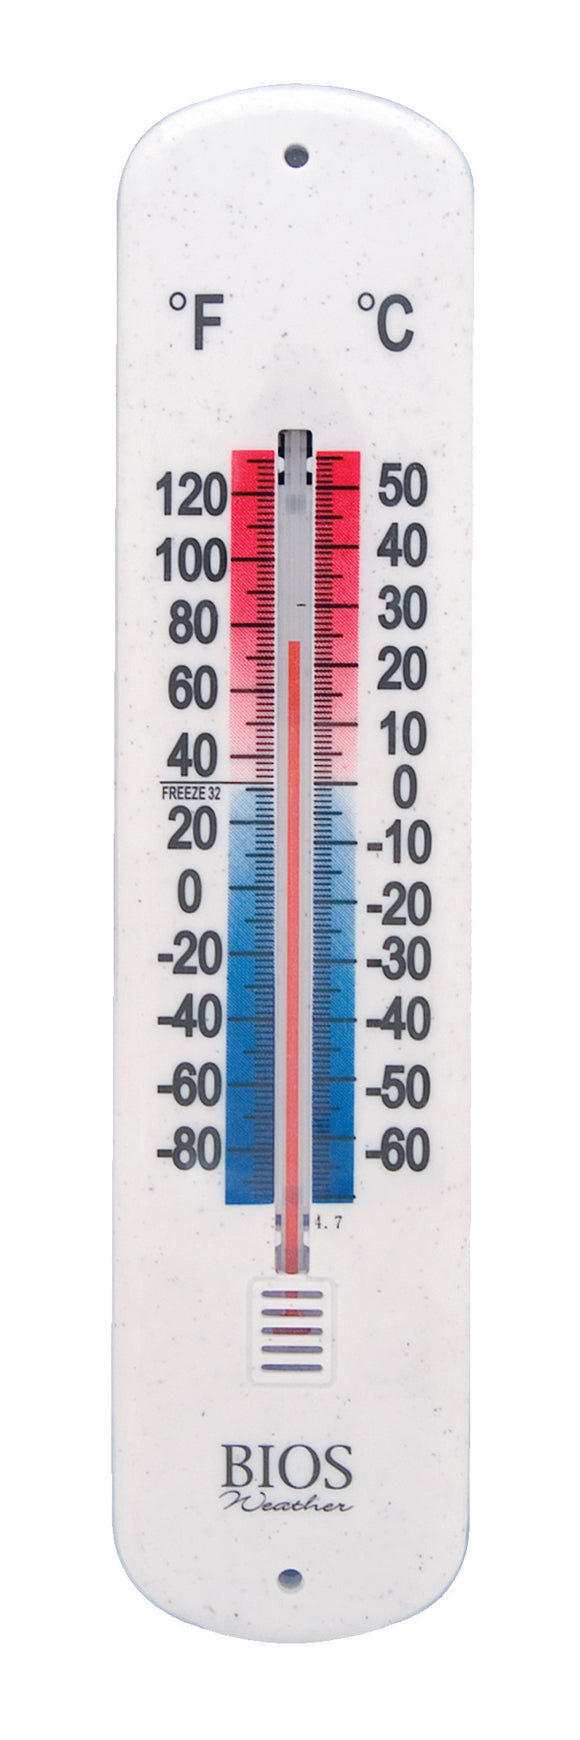 Tube Thermometer